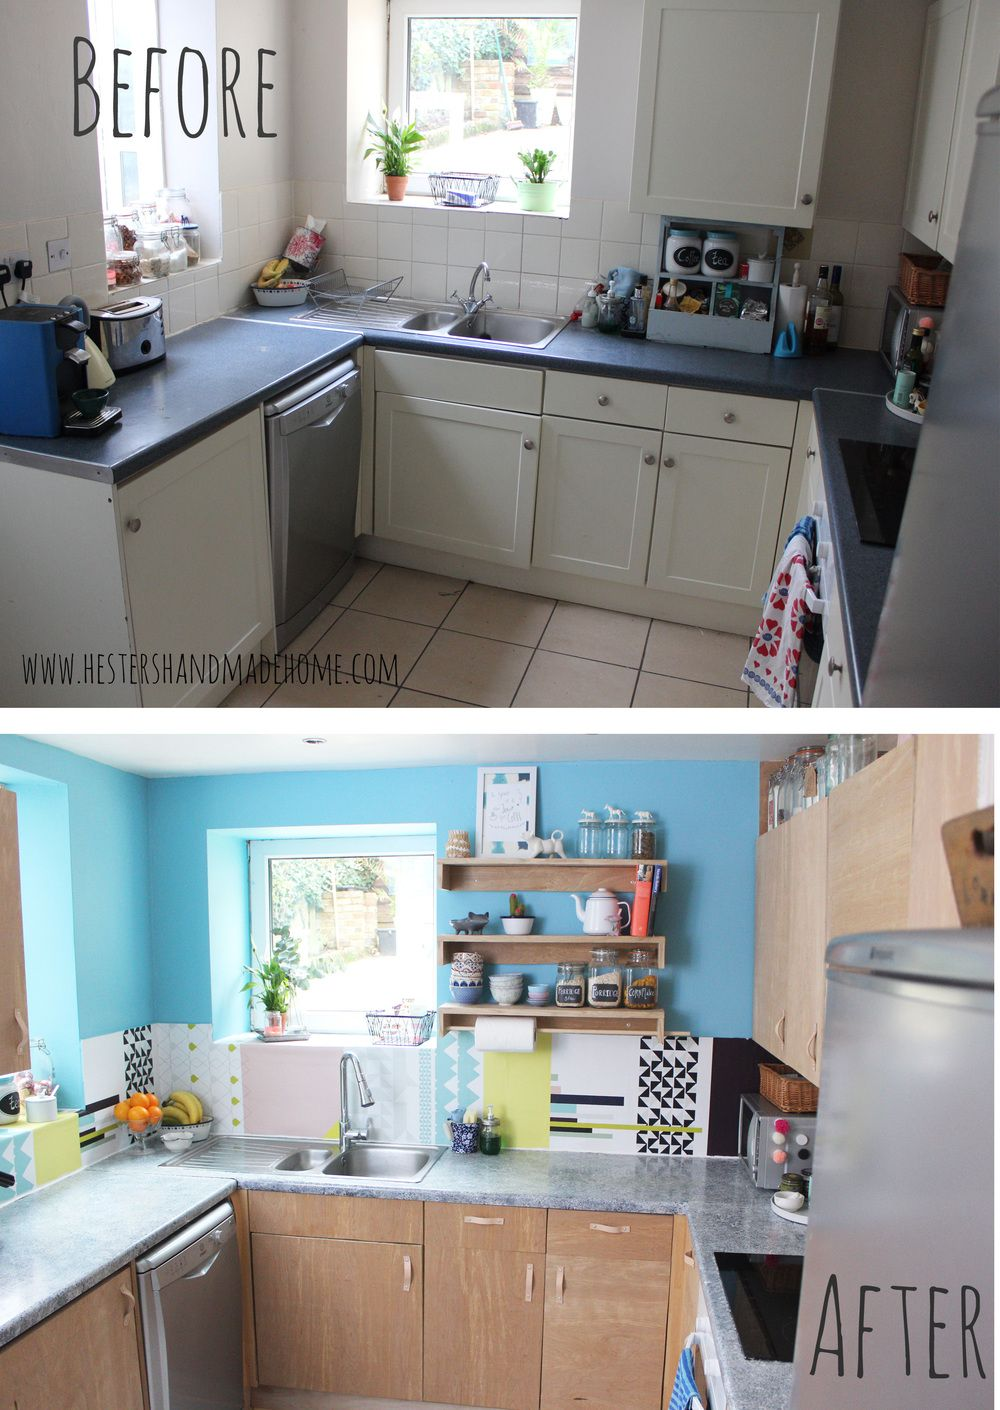 A Modern Diy Kitchen Makeover On A Budget Love The